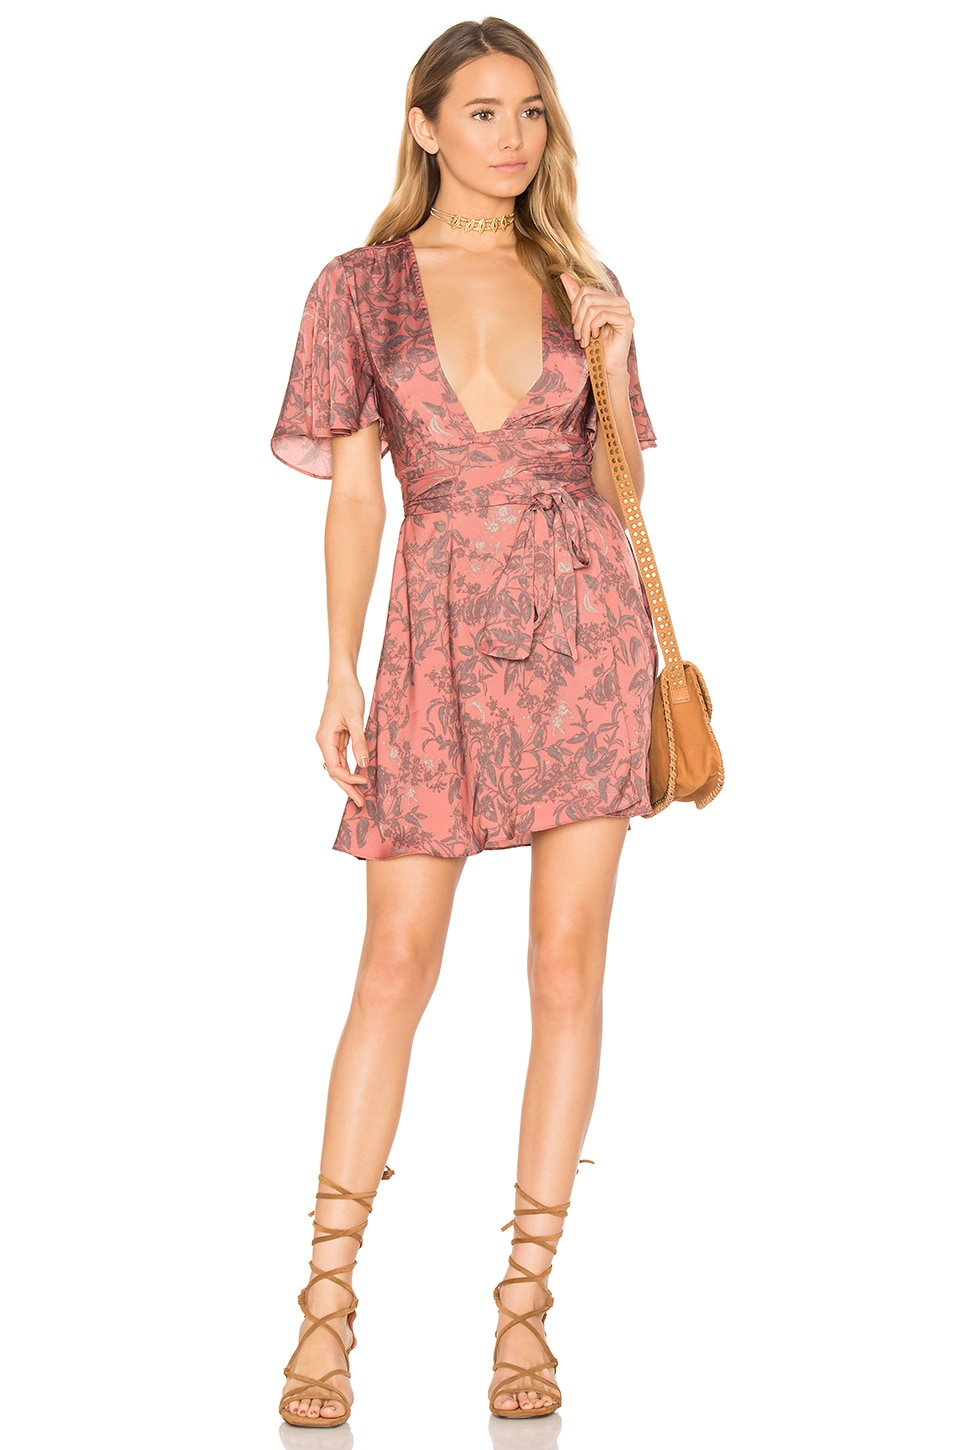 x REVOLVE Harper Wrap Dress by House of Harlow 1960